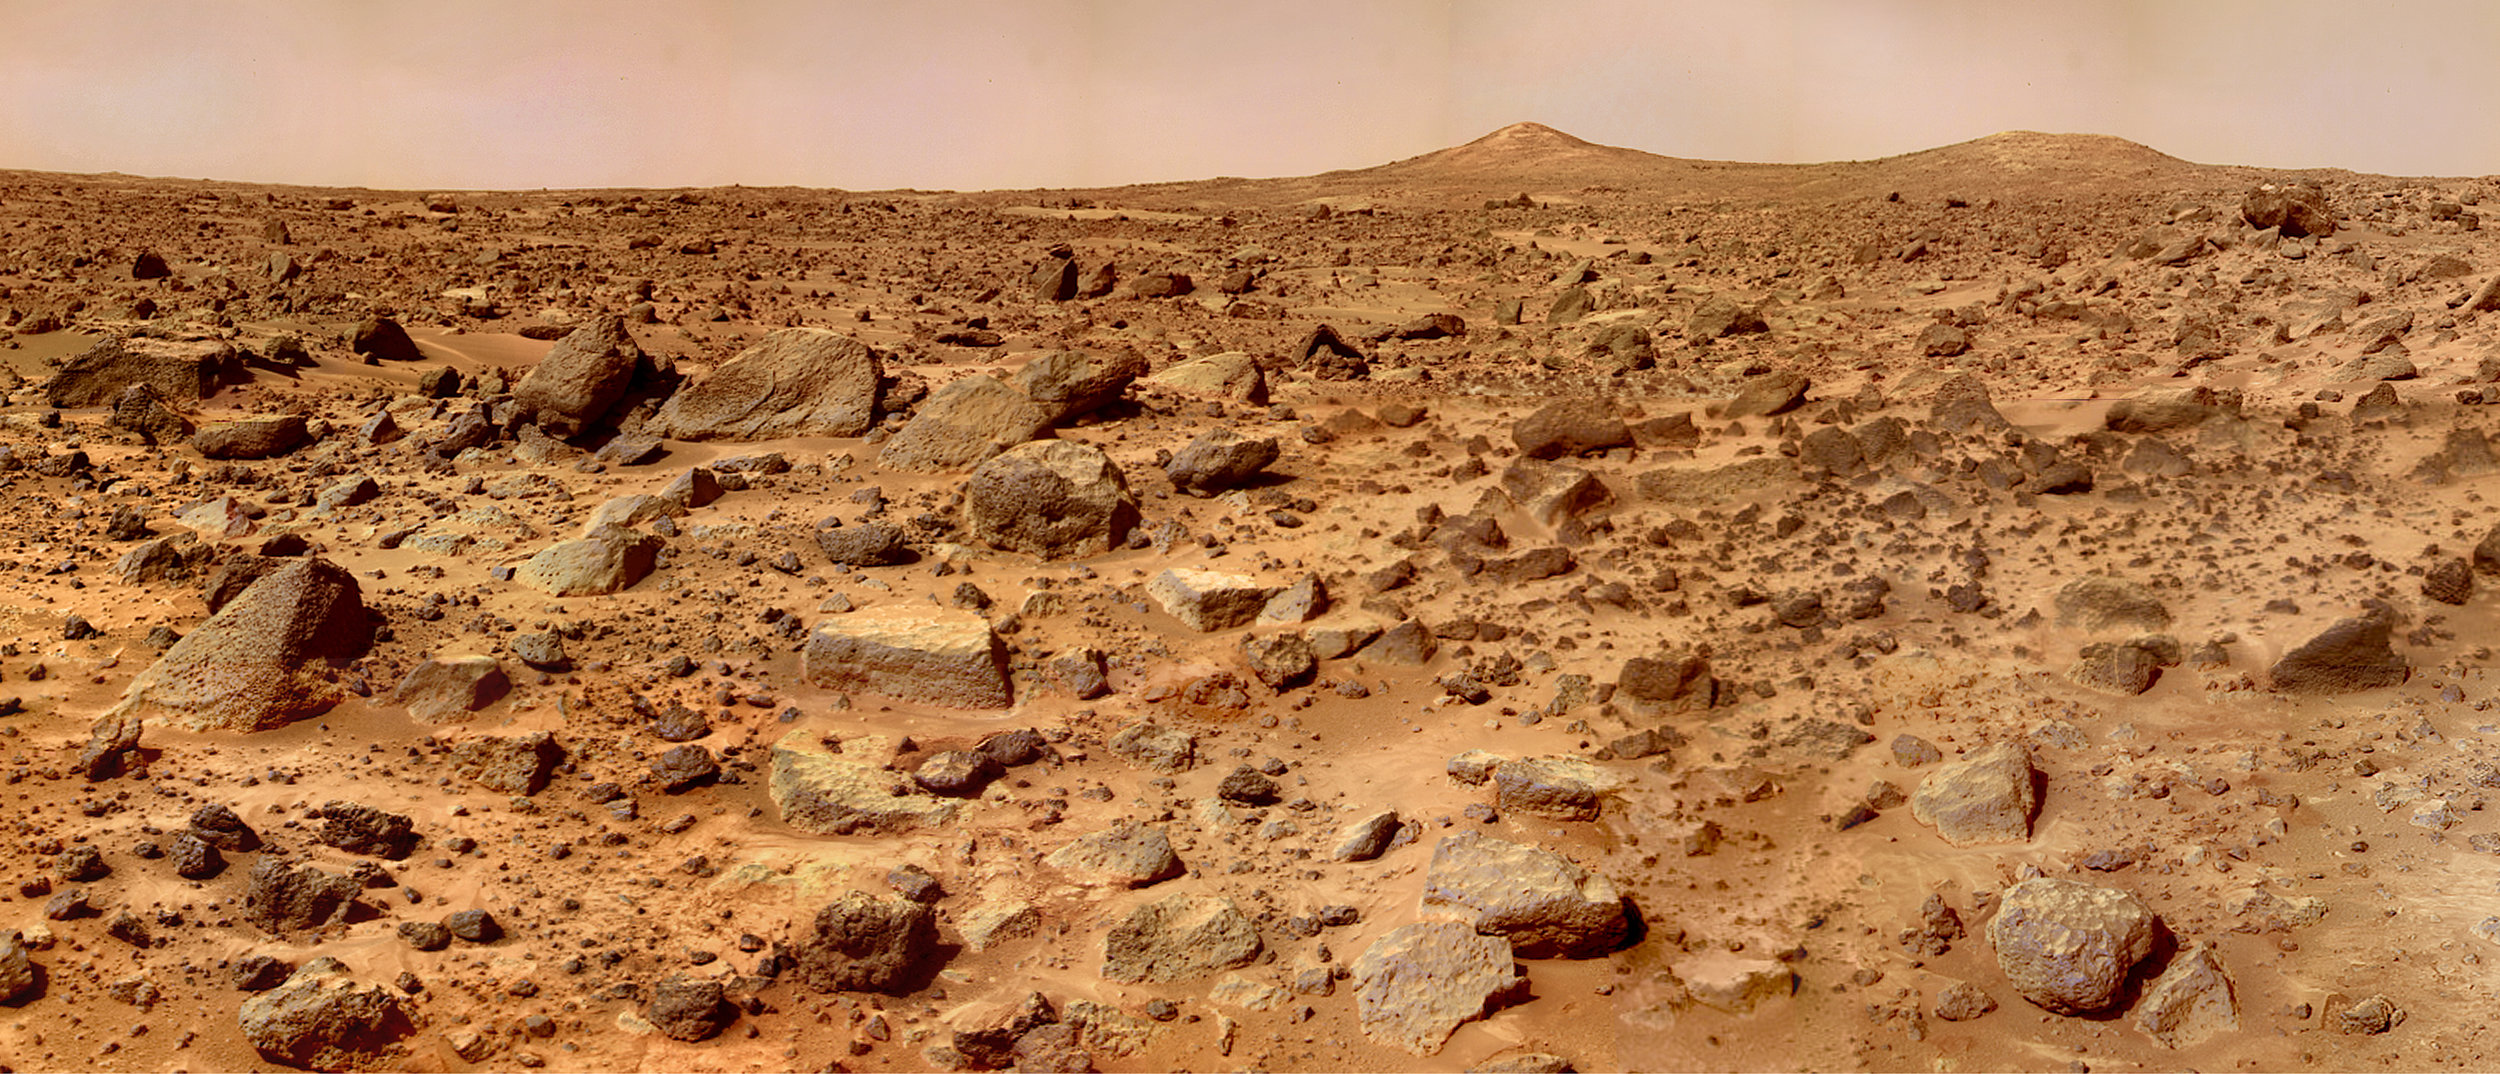 mars sounds exciting... - ...but I'd rather try to make it work here first.